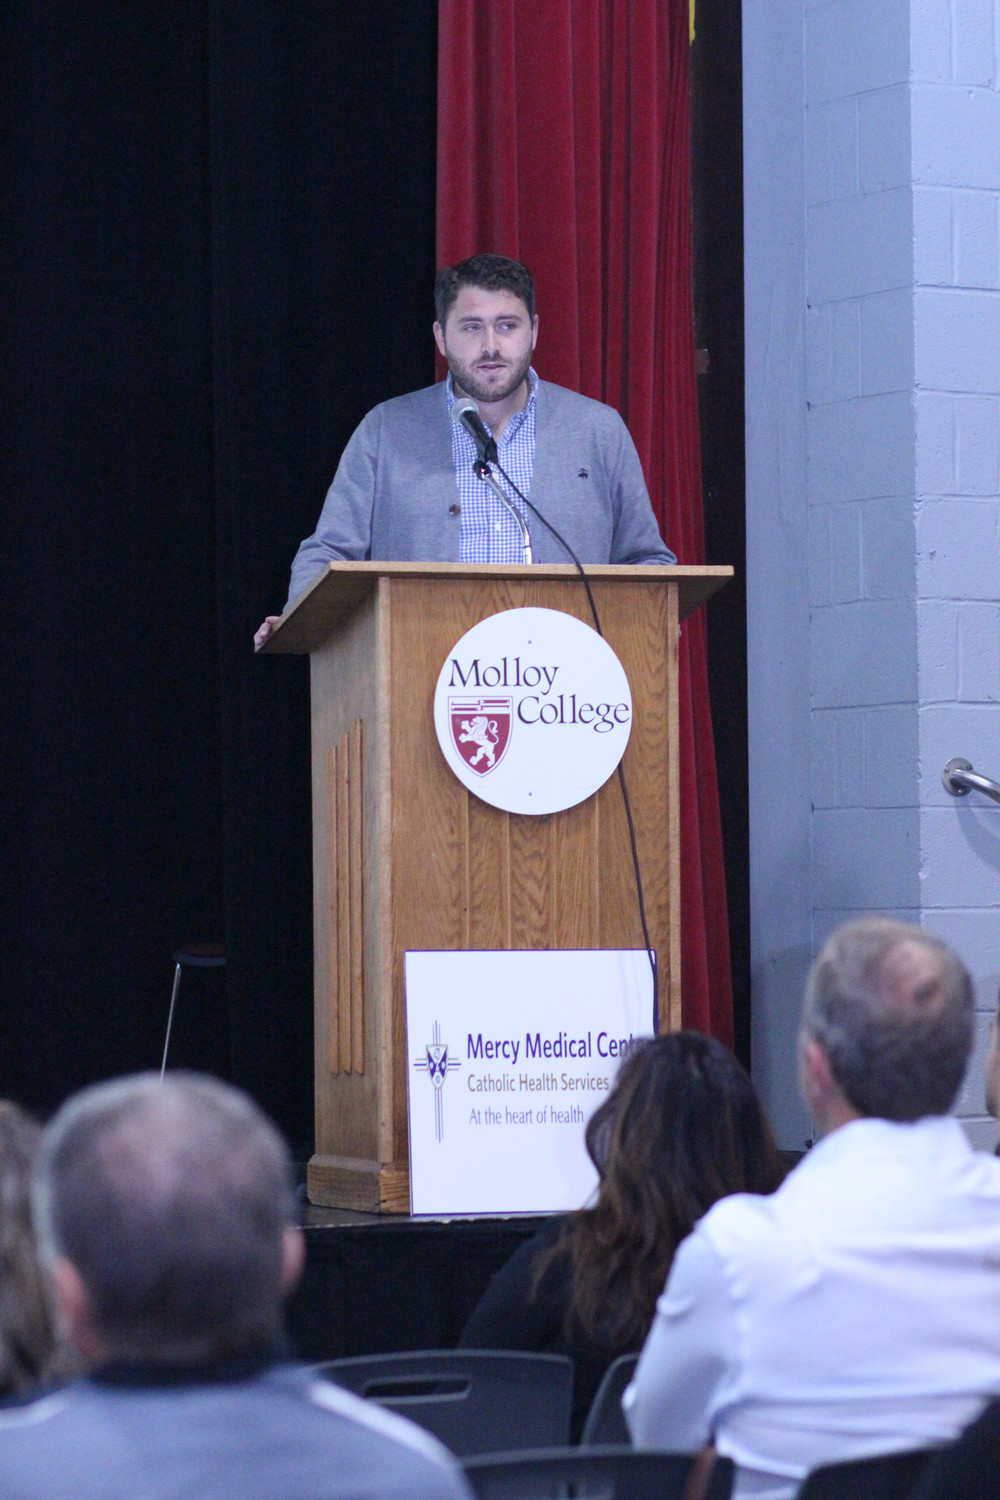 Noah Goldberg spoke to the packed auditorium about losing his father to opioid drug addiction.